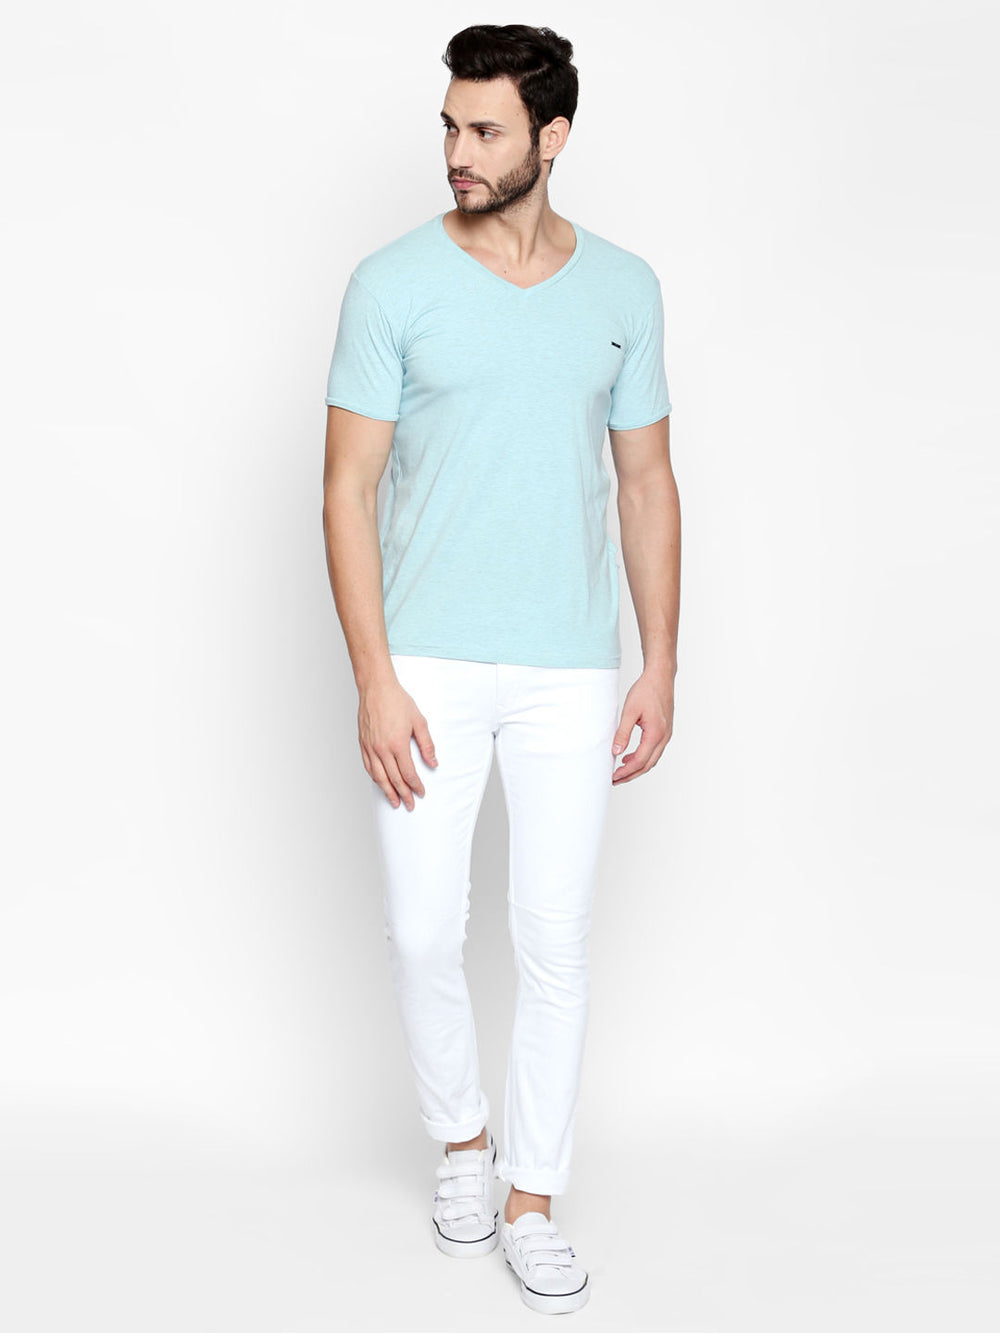 Disrupt White Slim Fit Jeans For Men's